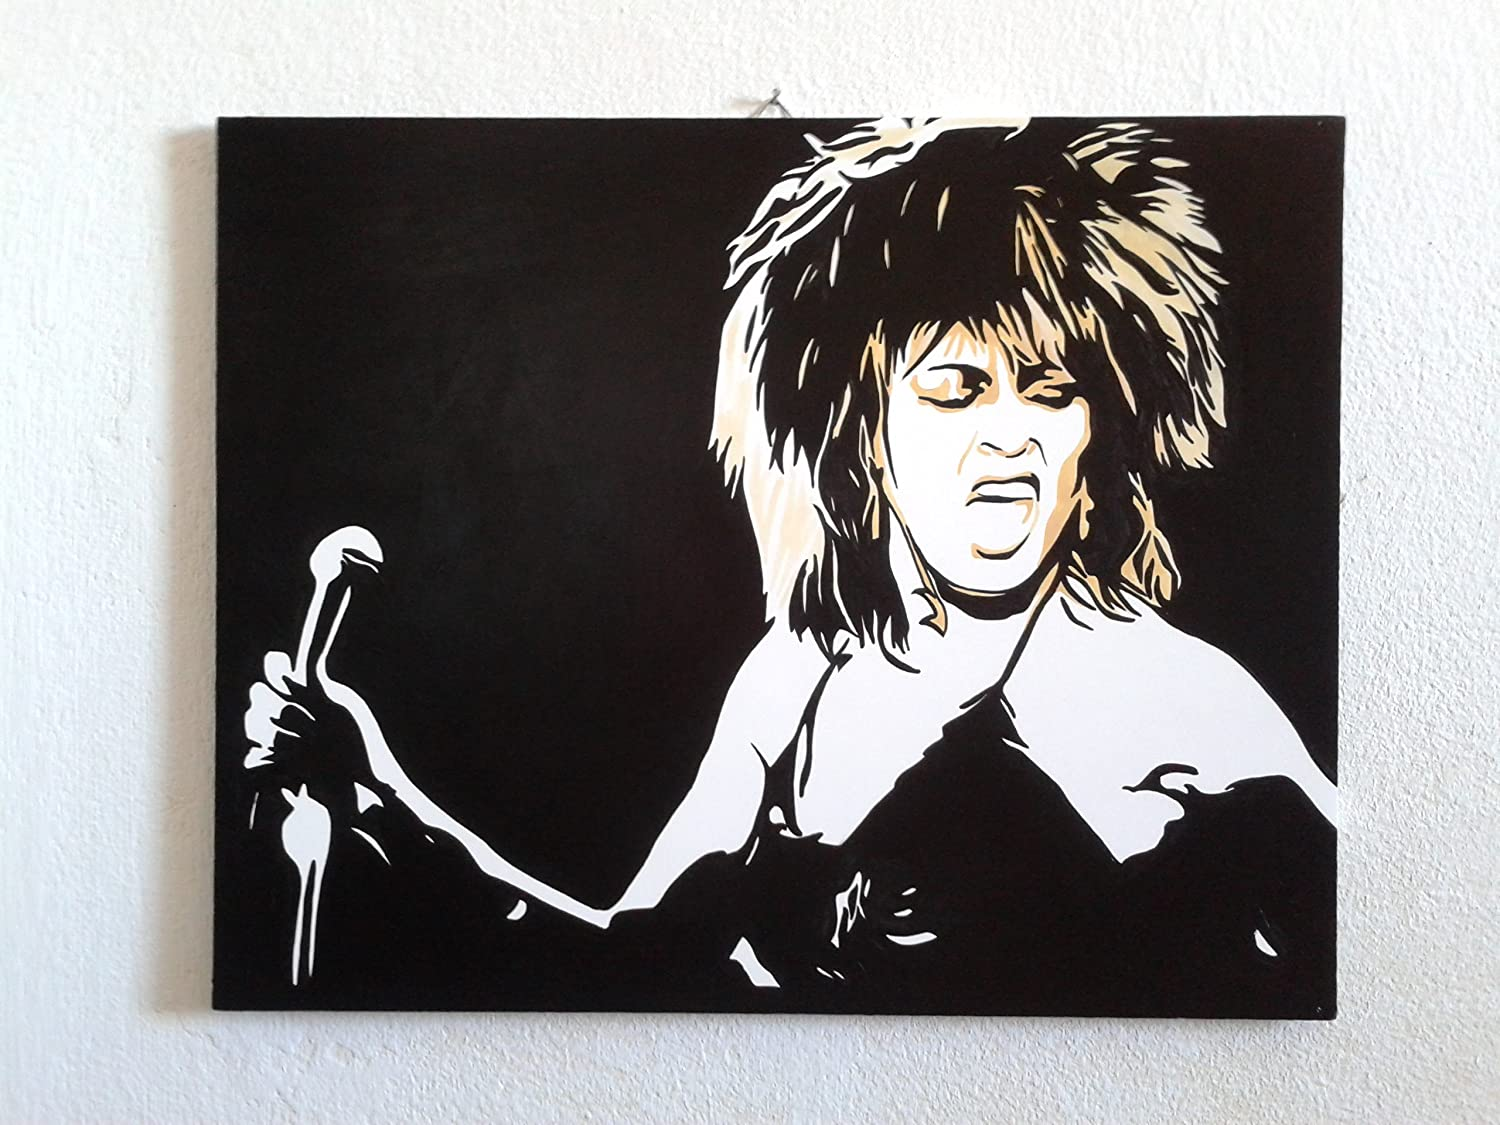 Black and white baby mobile designed and made in australia by tina - Tina Turner Modern Painting Pop Art Style Hand Painted By Fratta Artist Ready To Hang 100 Artwork Hand Made 24 X 18 Inches Amazon Co Uk